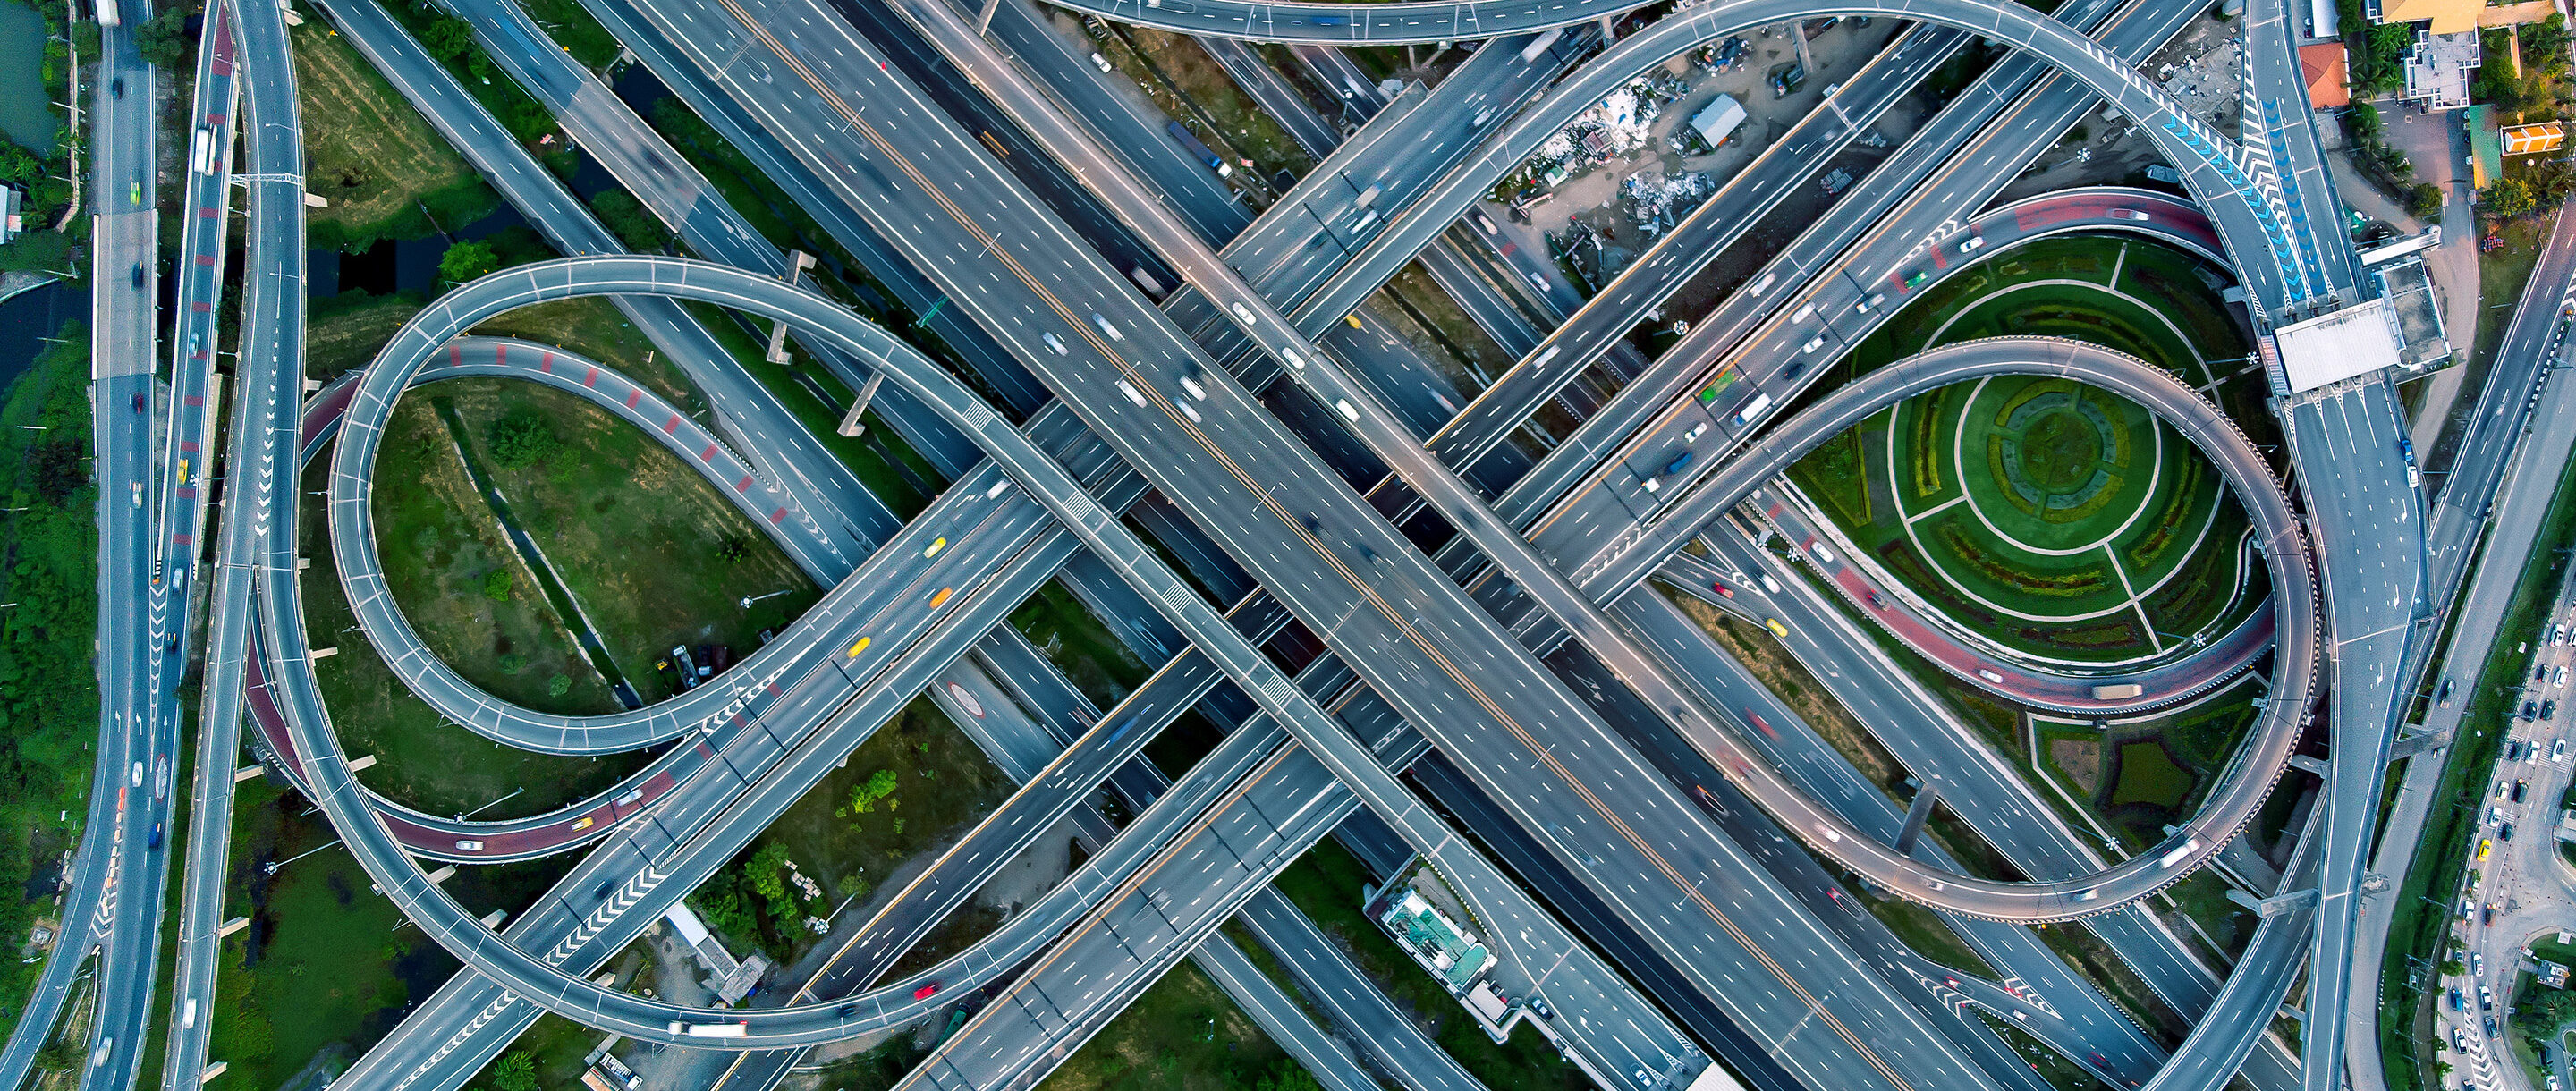 Aerial image of a complicated road network.